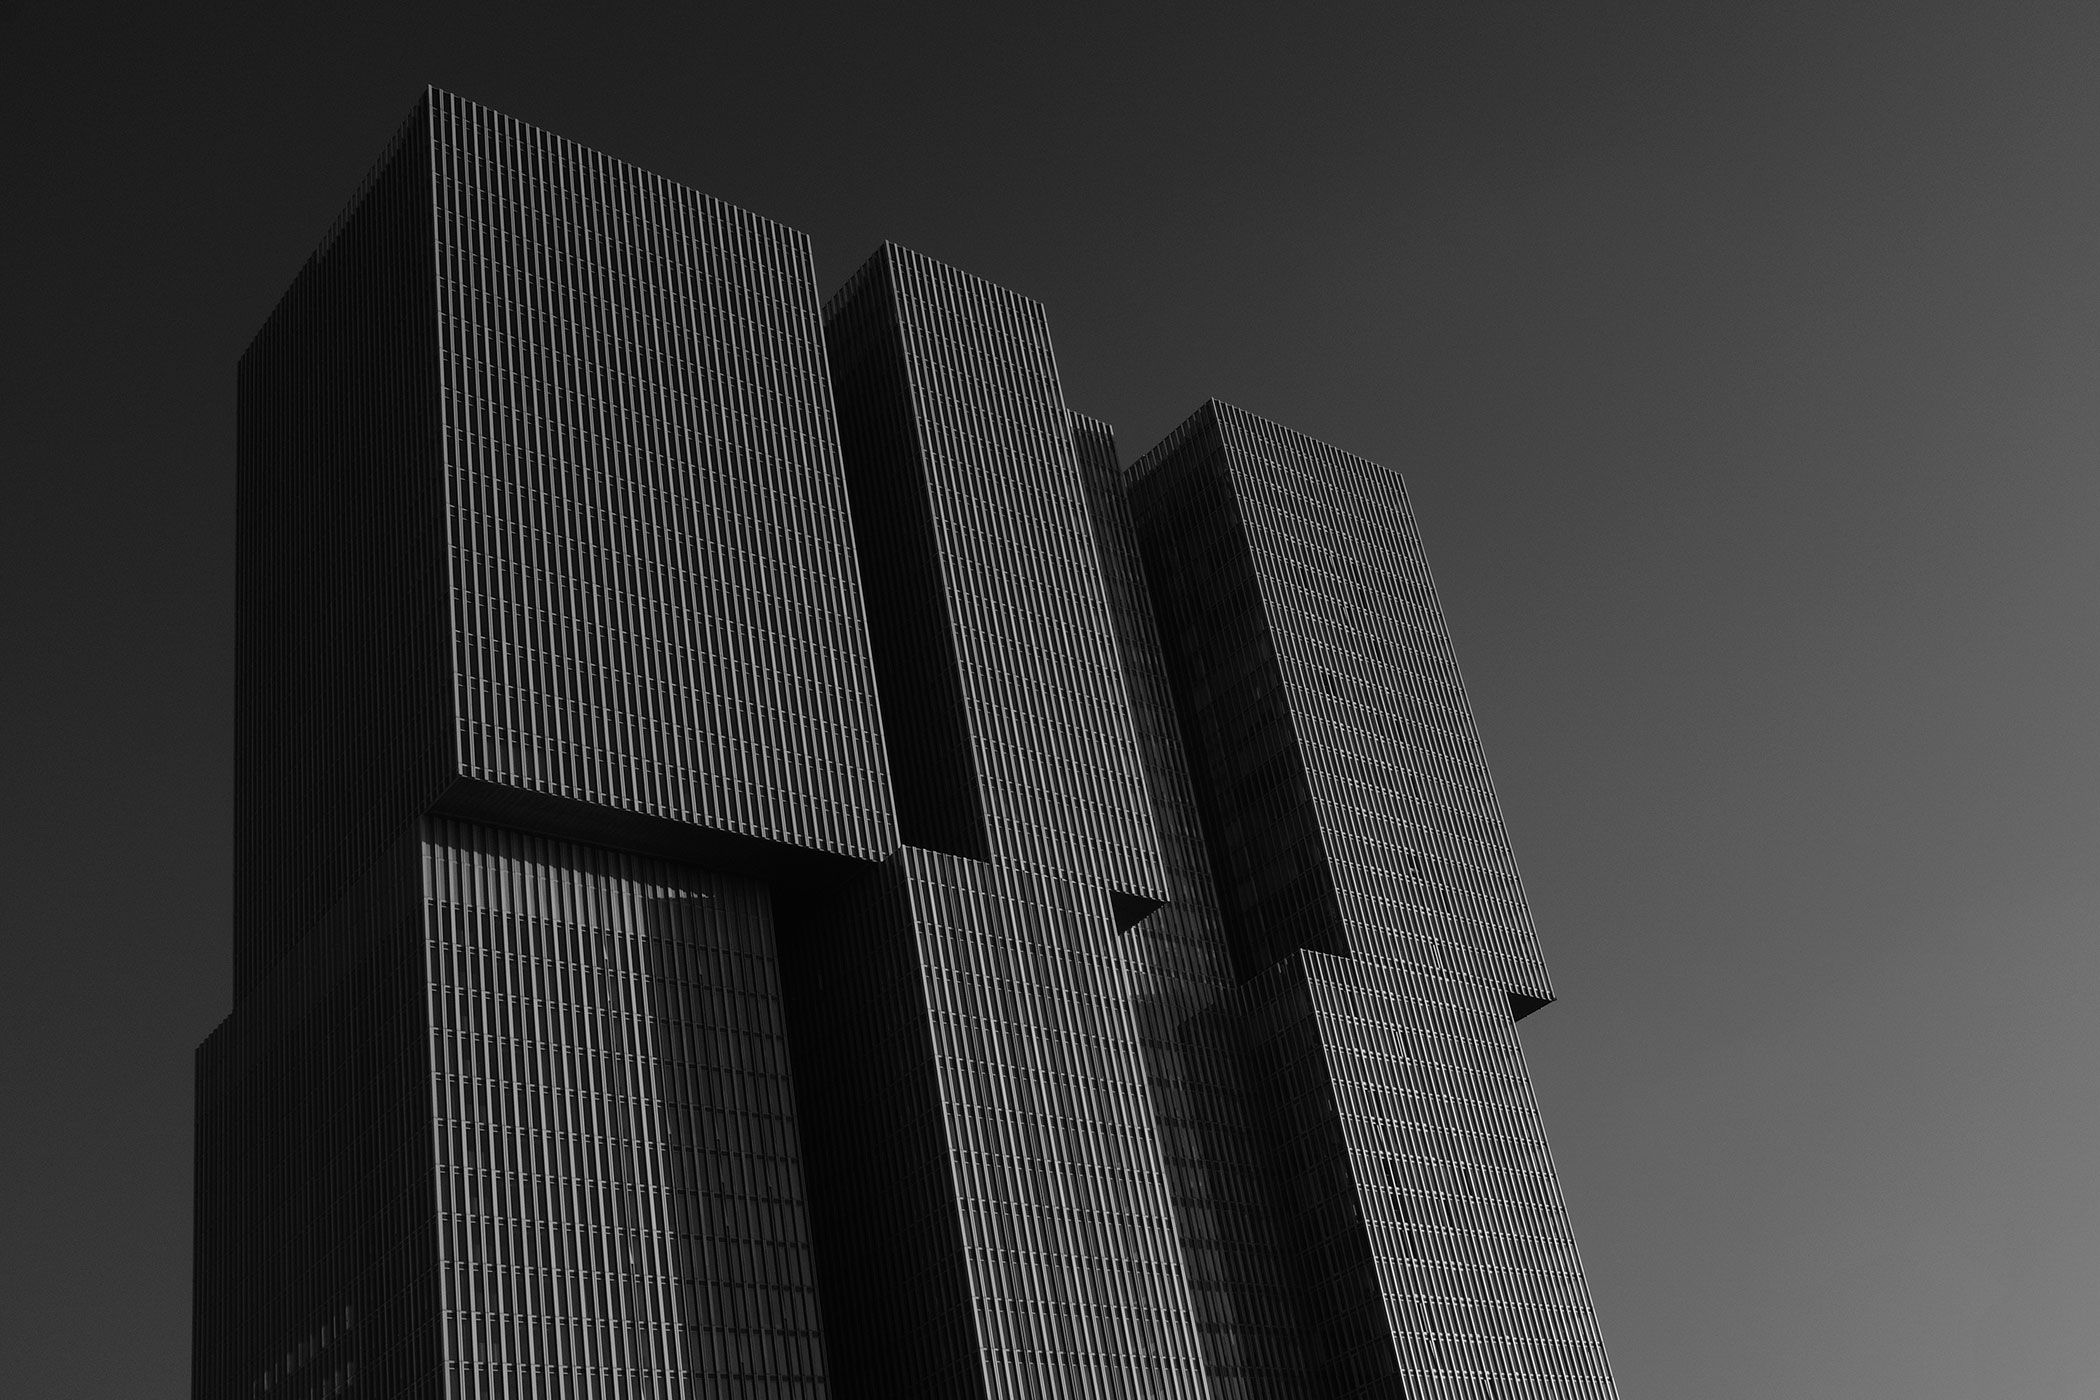 city architecture photography